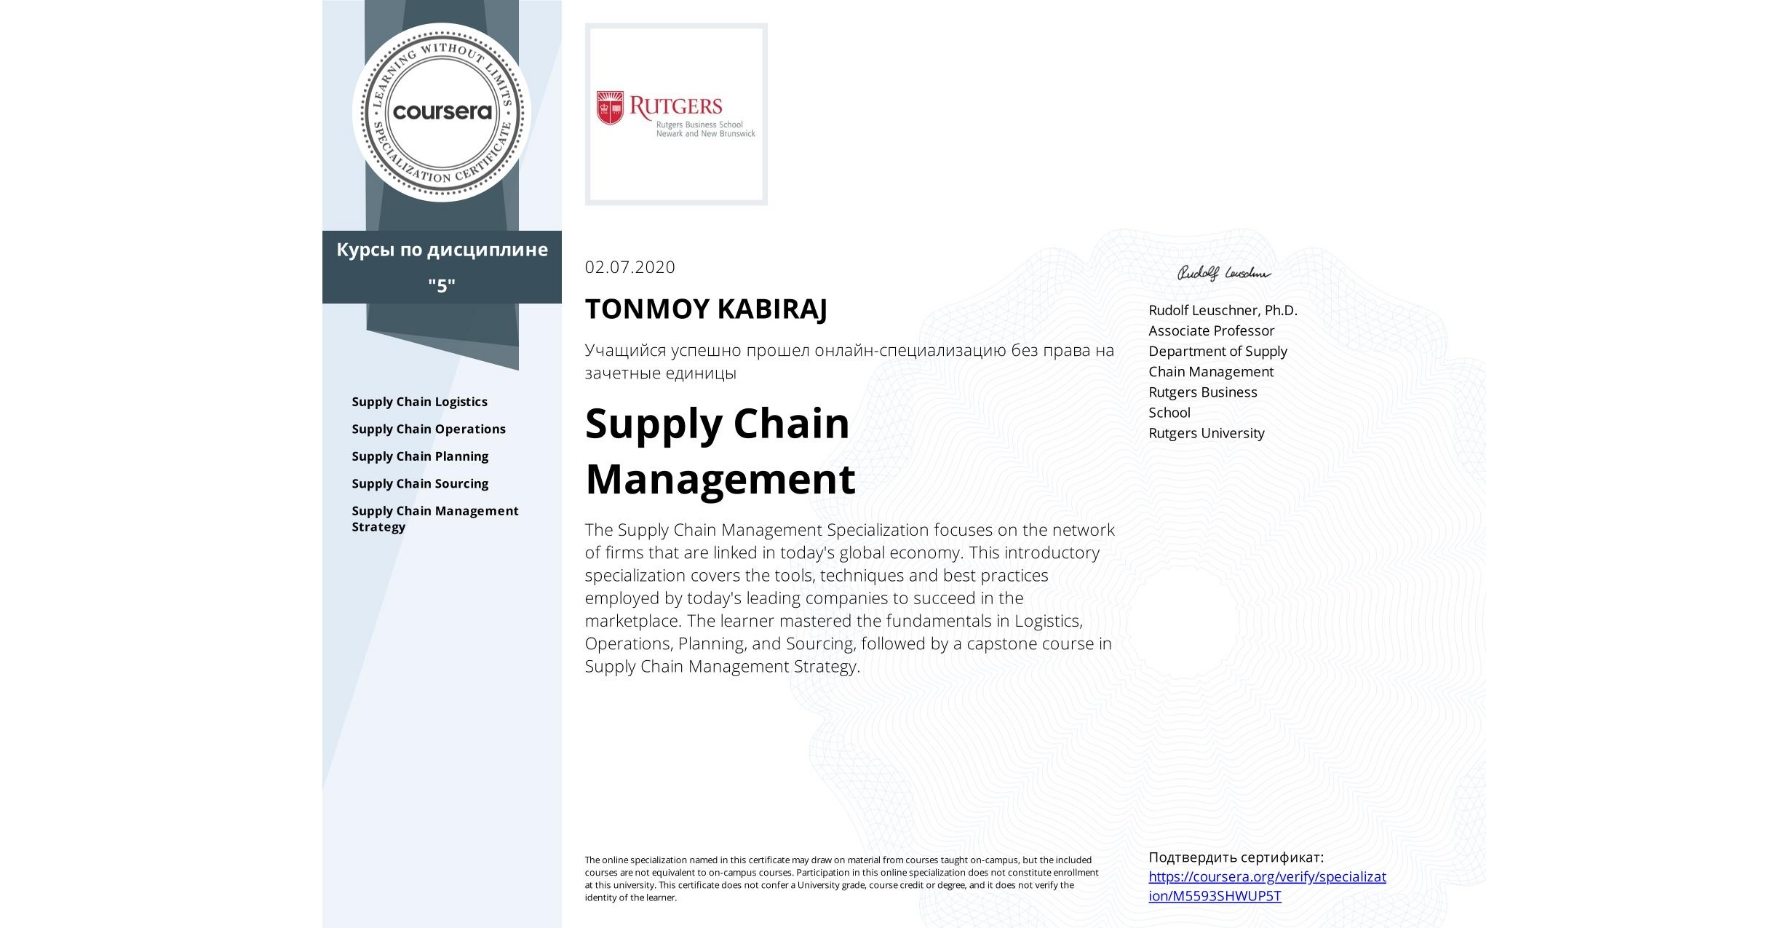 View certificate for TONMOY KABIRAJ, Supply Chain Management, offered through Coursera. The Supply Chain Management Specialization focuses on the network of firms that are linked in today's global economy. This introductory specialization covers the tools, techniques and best practices employed by today's leading companies to succeed in the marketplace. The learner mastered the fundamentals in Logistics, Operations, Planning, and Sourcing, followed by a capstone course in Supply Chain Management Strategy.